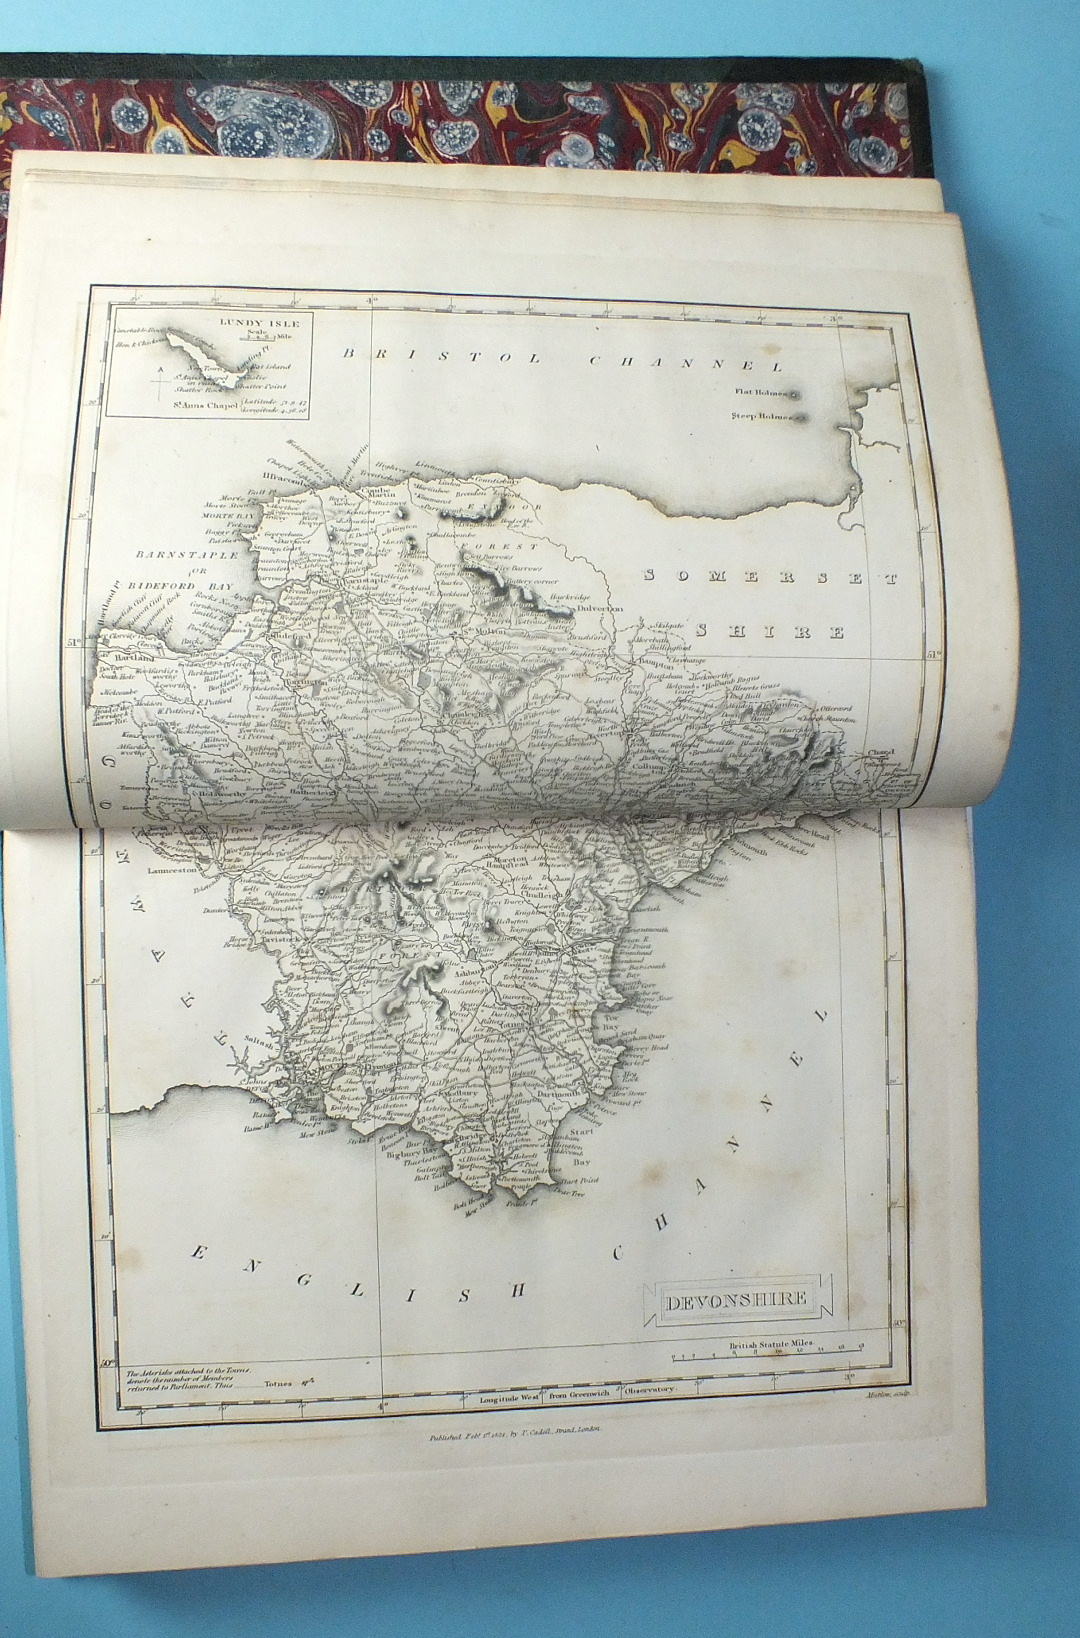 Lot 174 - Lysons (Daniel & Samuel) Magna Britannia, Being a Concise Topographical Account of Several